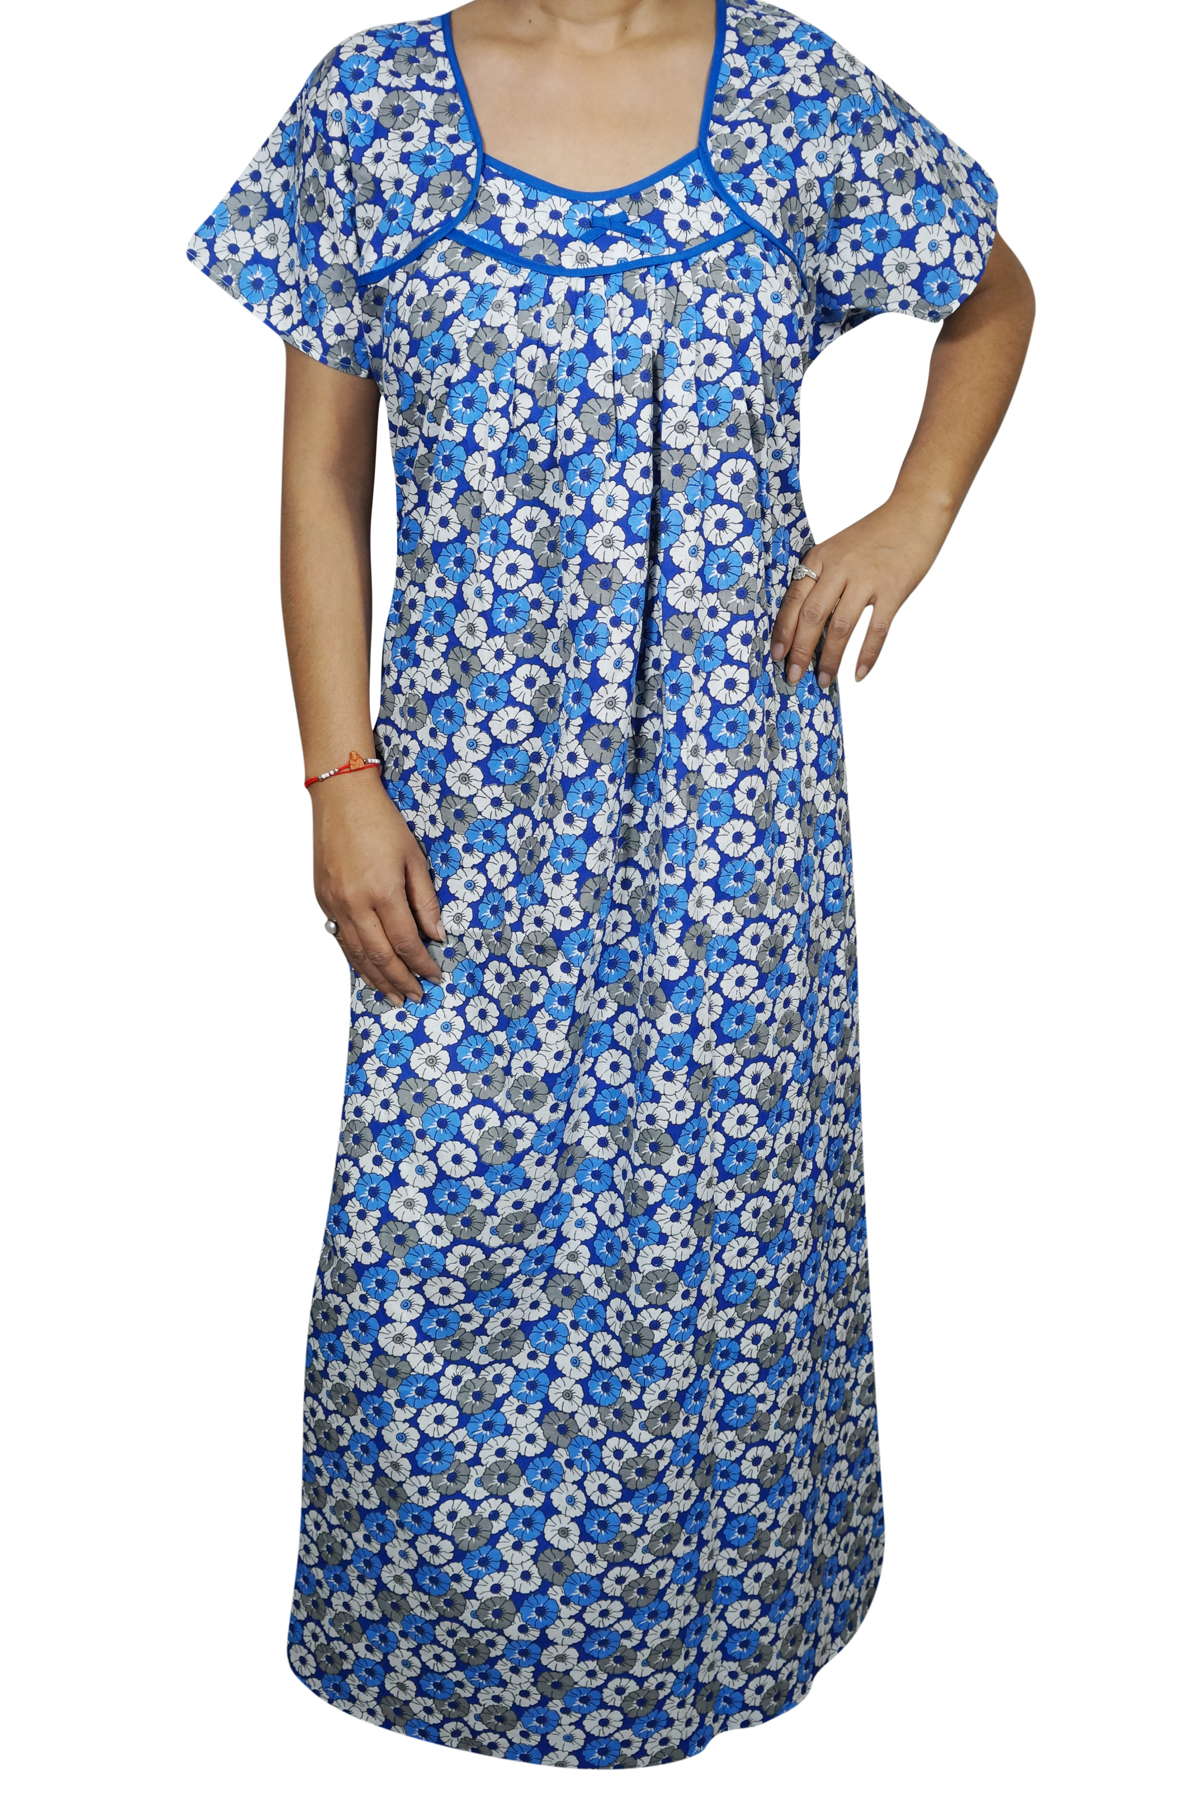 e011069d9b Look good and feel relaxed by wearing this Printed Sleepwear. Made of the  best quality Cotton fabric